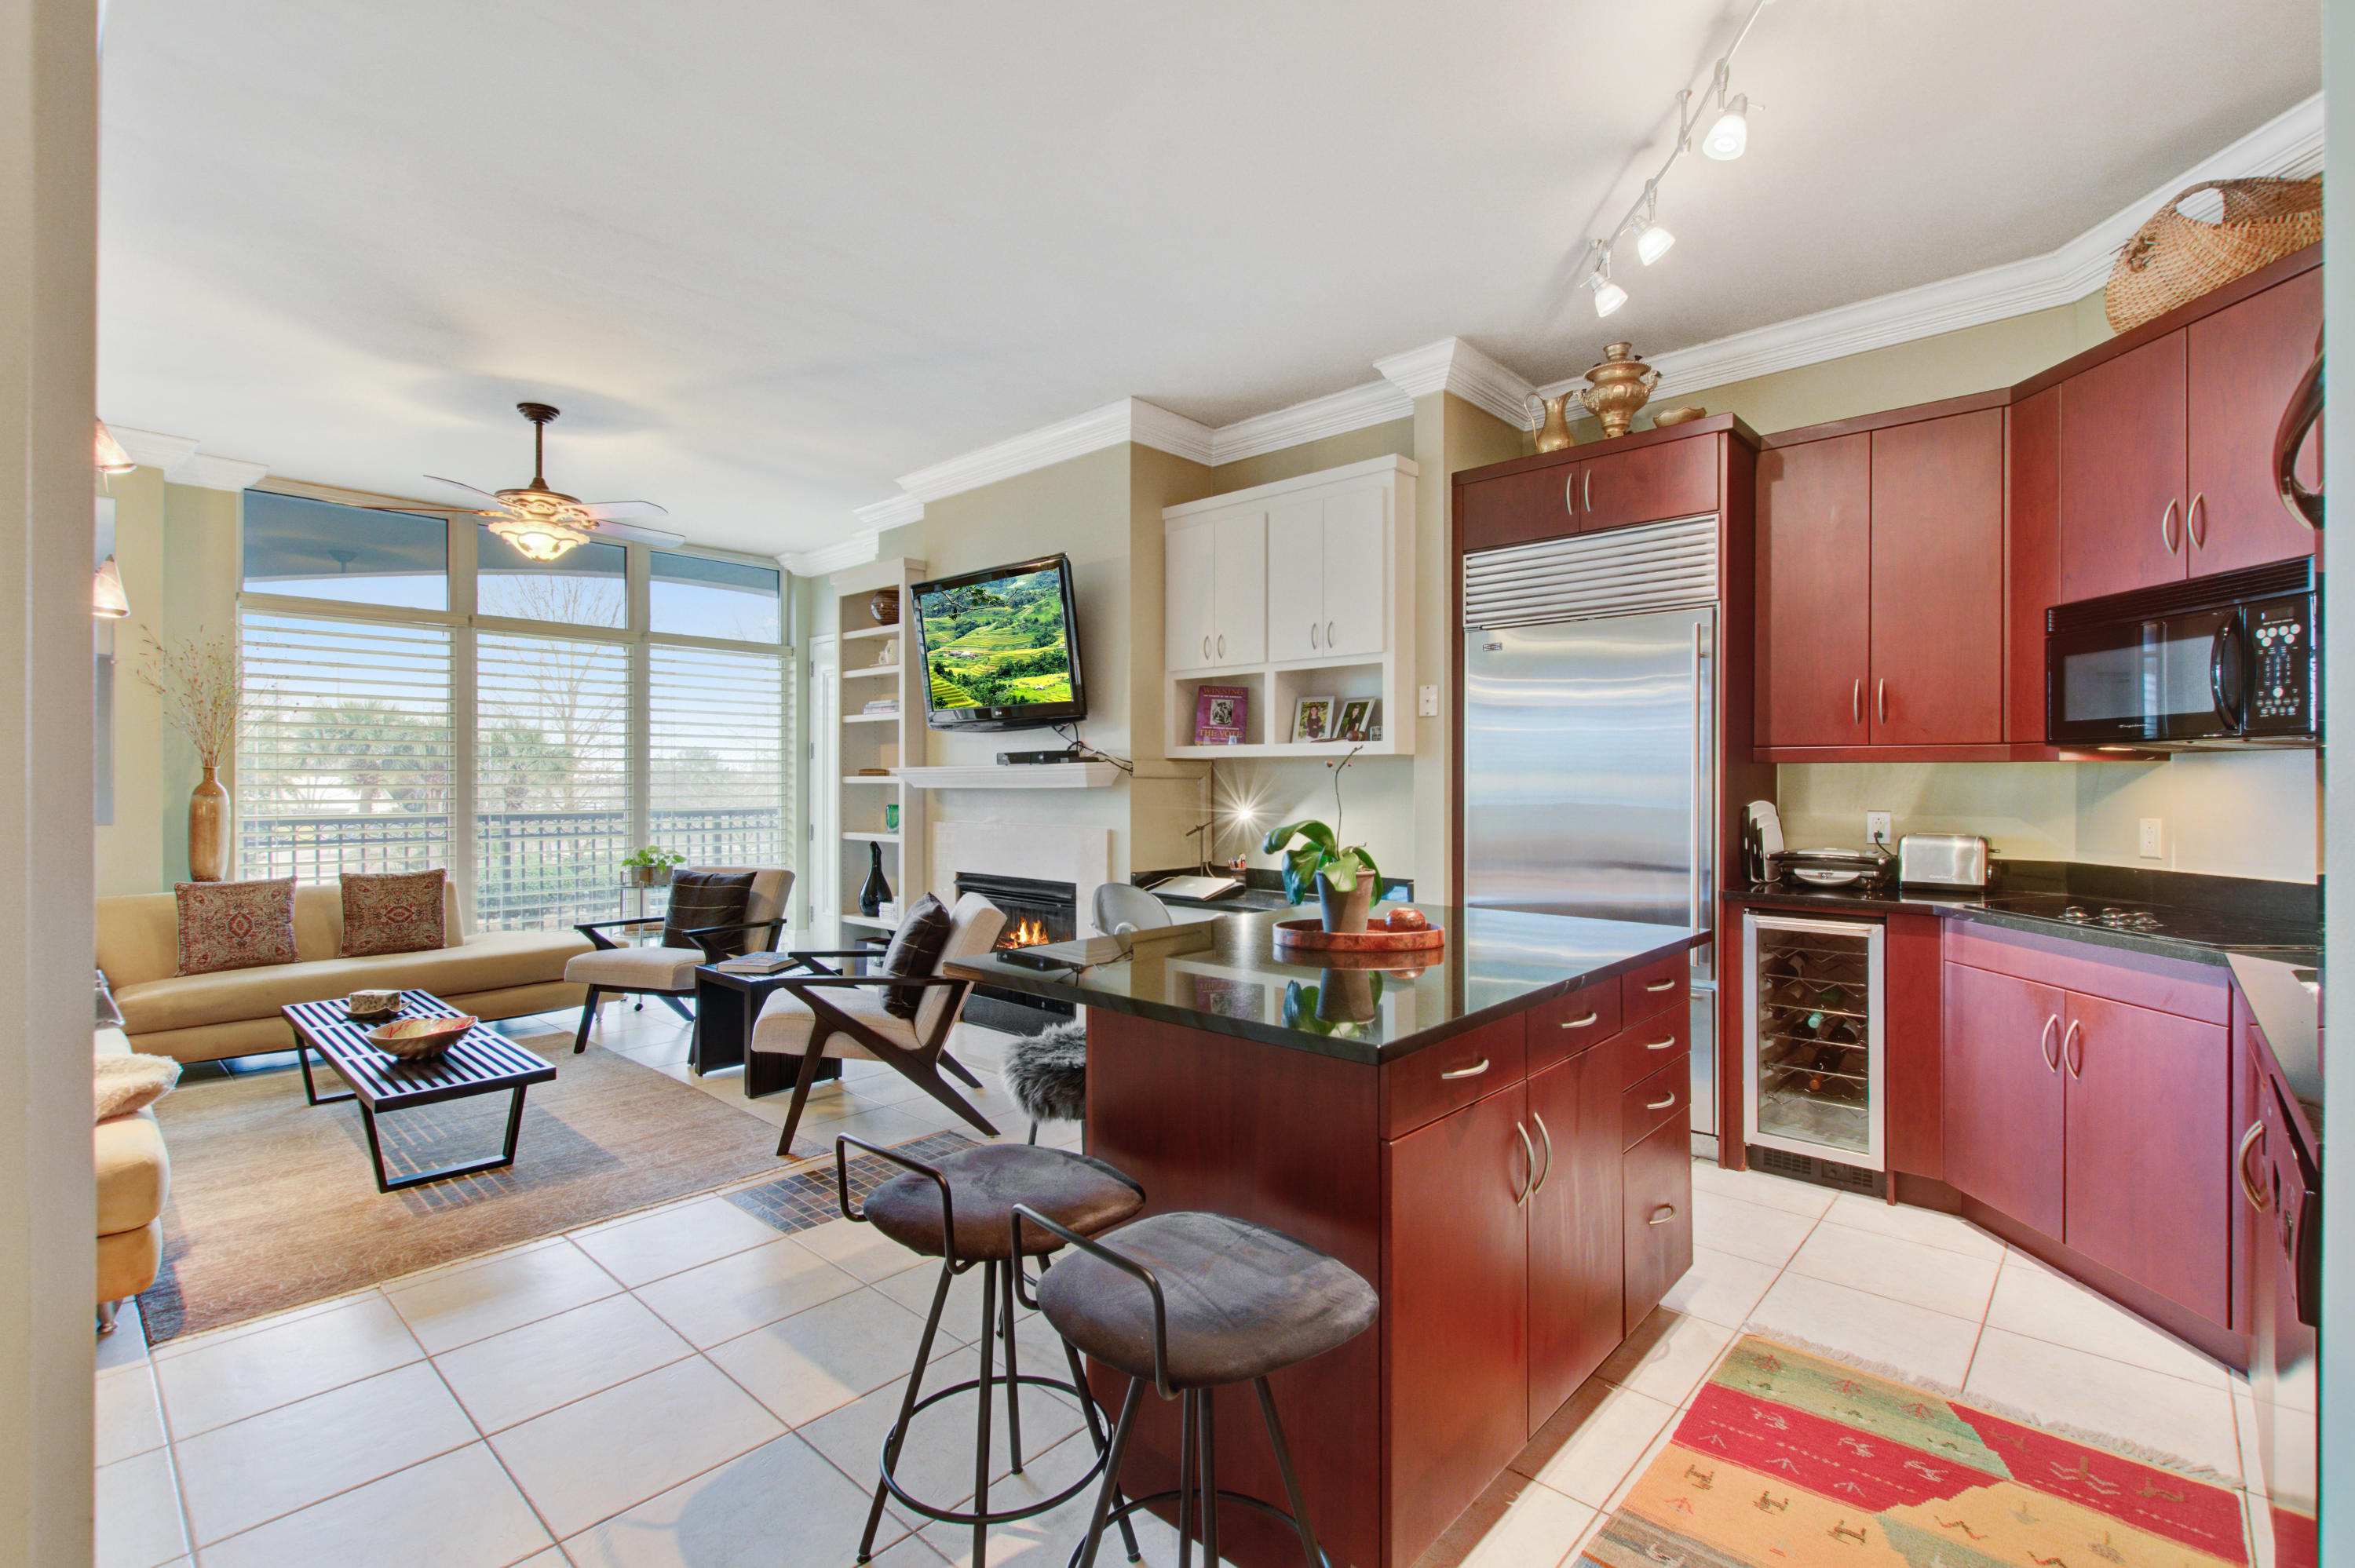 Renaissance On Chas Harbor Homes For Sale - 231 South Plaza, Mount Pleasant, SC - 38